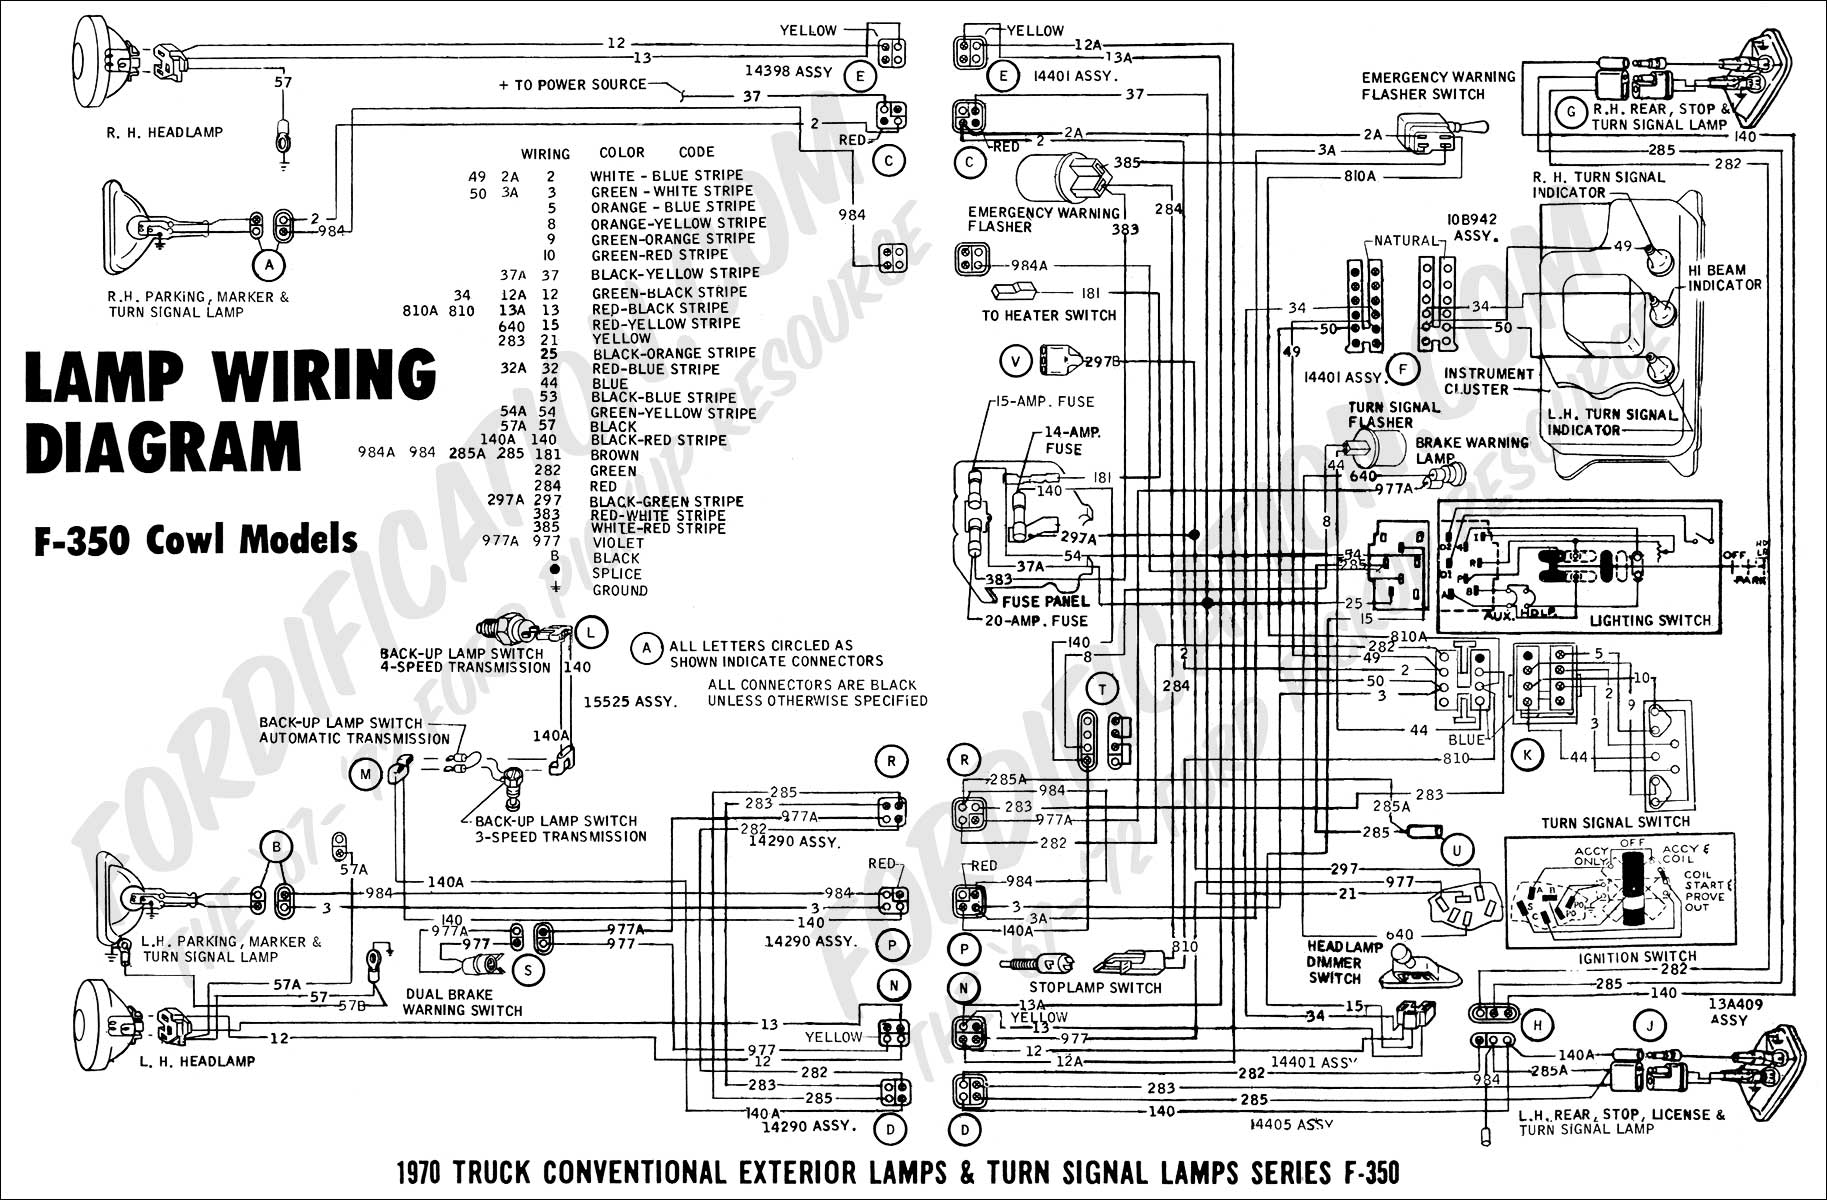 2007 Ford Mustang Wiring Diagram Headlights Archive Of Automotive 1983 Ac 2003 F350 Transmission Detailed Schematics Rh Antonartgallery Com